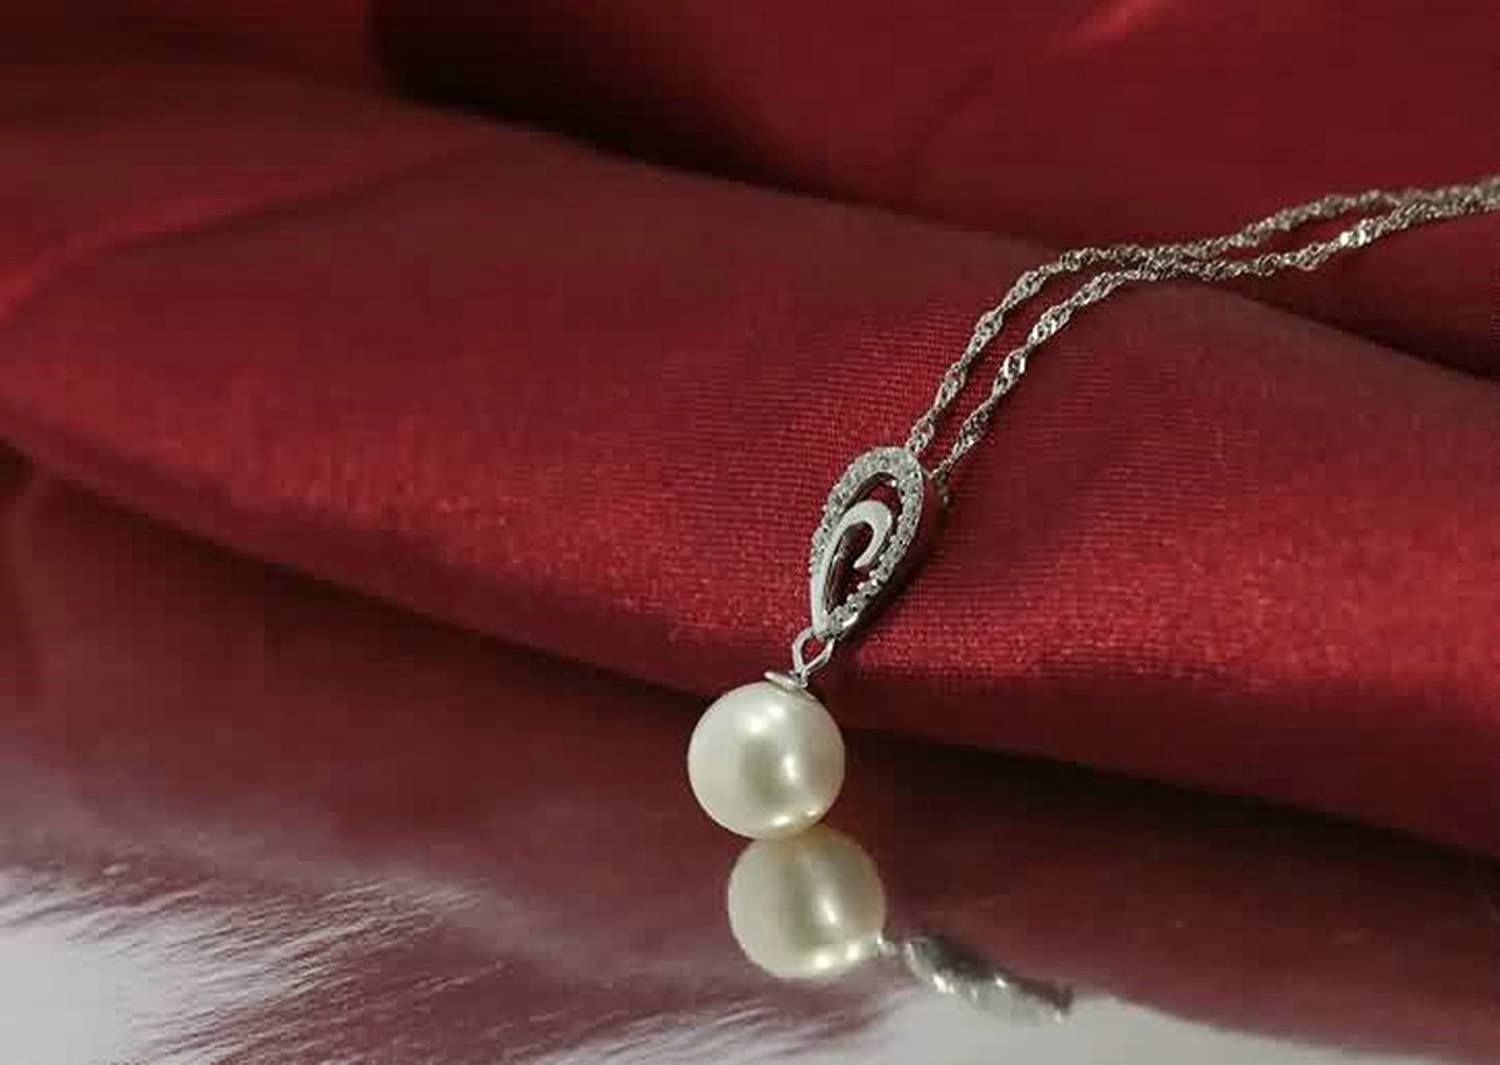 AMDXD Jewelry Sterling Silver Pendant Necklaces for Women Drop Pearl Cubic Zirconia Silver 2.5X0.9CM